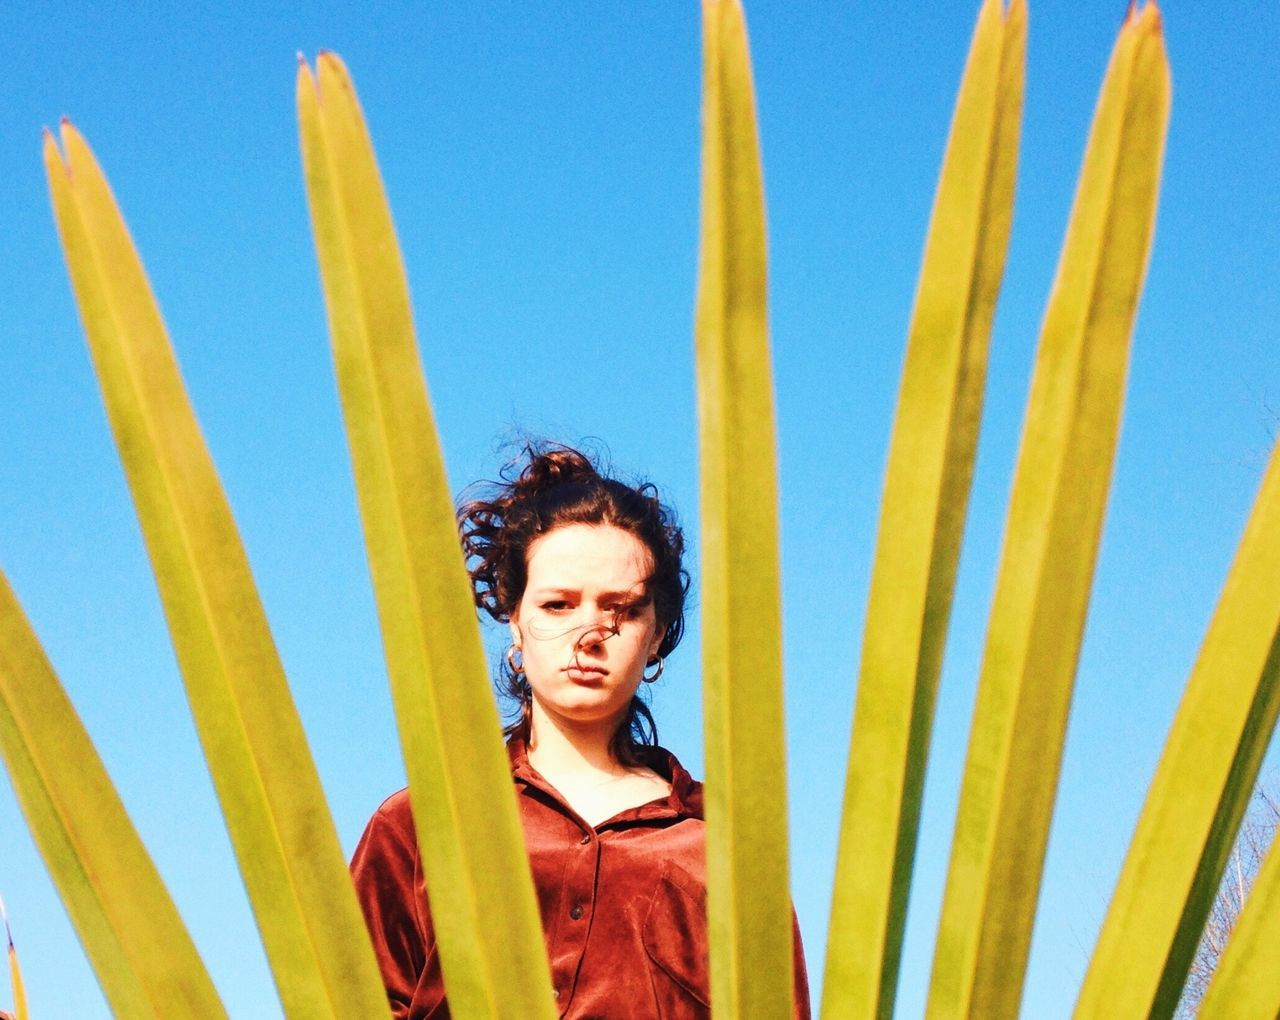 Spring has come ! Lifestyles Nature Young Women Clear Sky Palm Tree Blue Sky Spring Springtime Composition Portrait Curly Hair Blue Outdoors Waist Up Front View Look Looking At Camera Strongwoman Deep Colors Strength